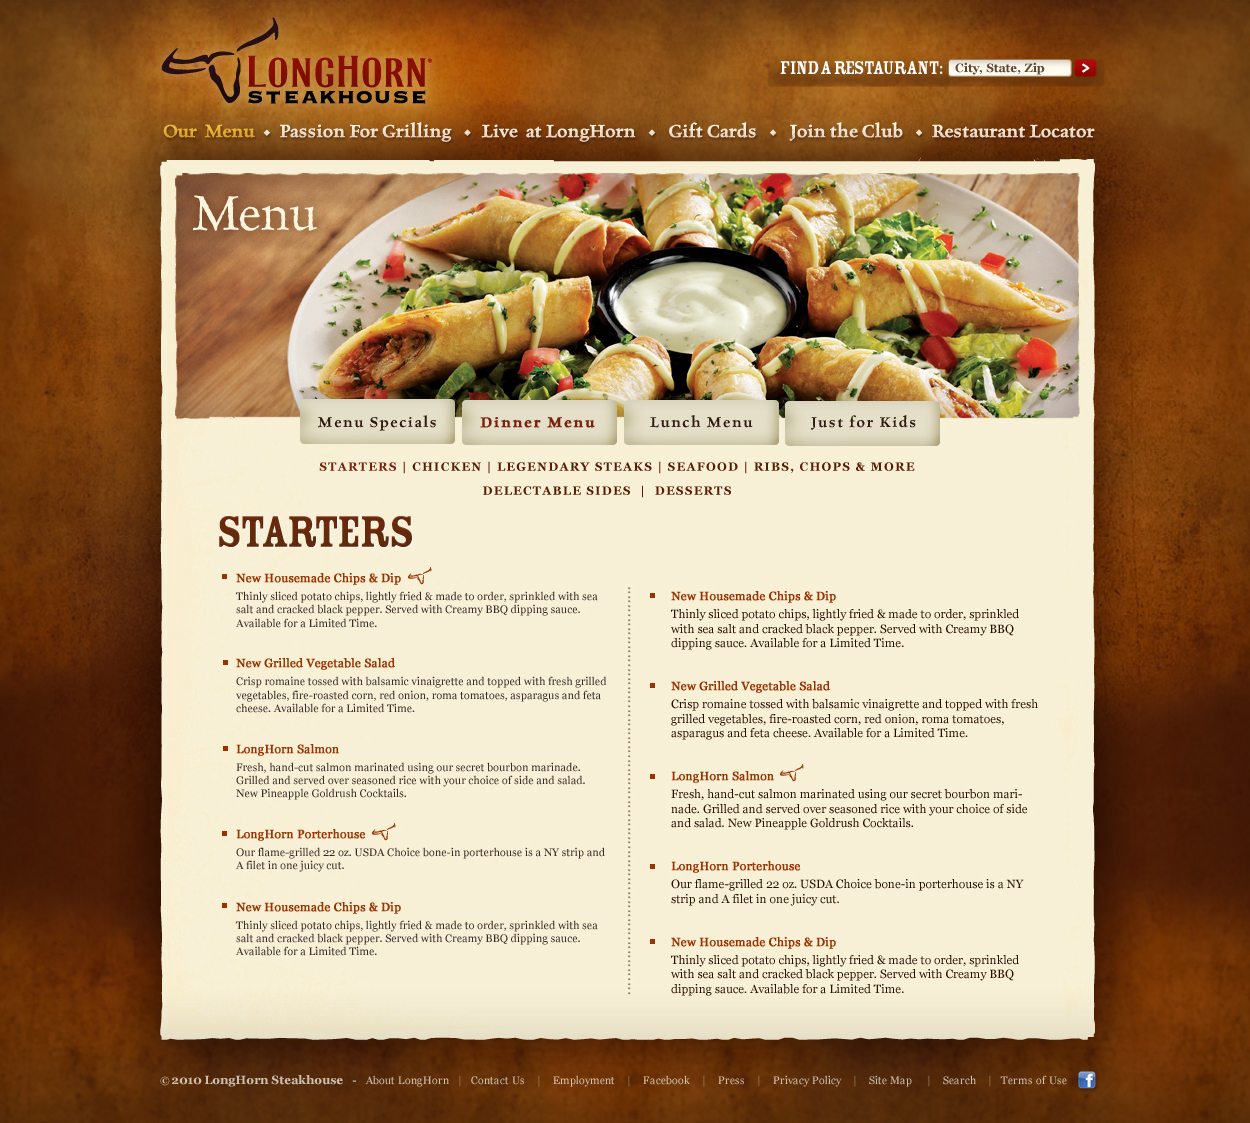 Steakhouse web design erman erkur